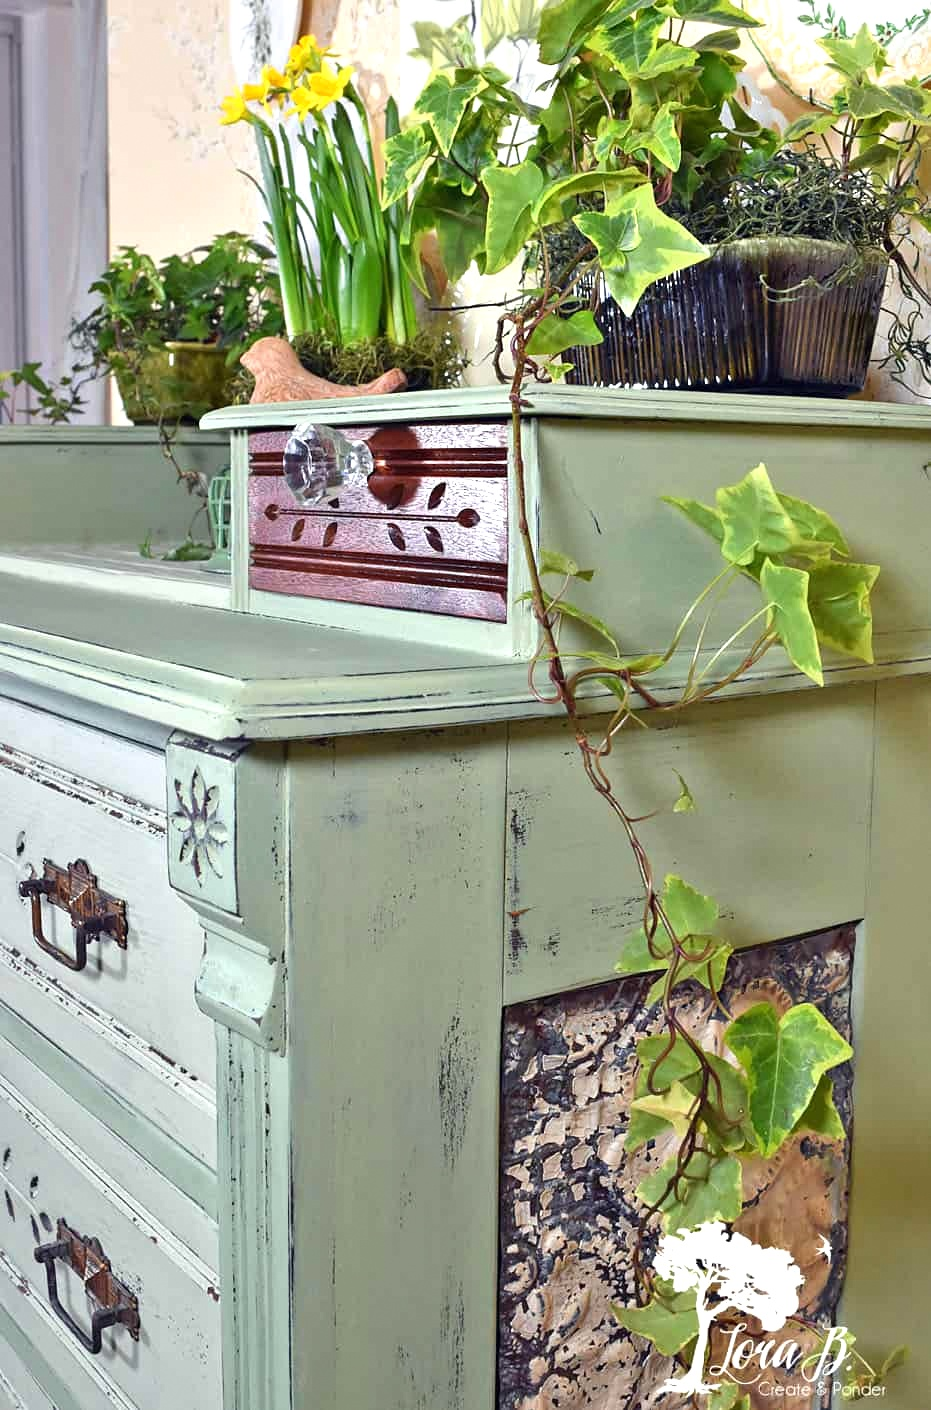 Vintage green spring dresser makeover by Lora B, featured on Funky Junk Interiors